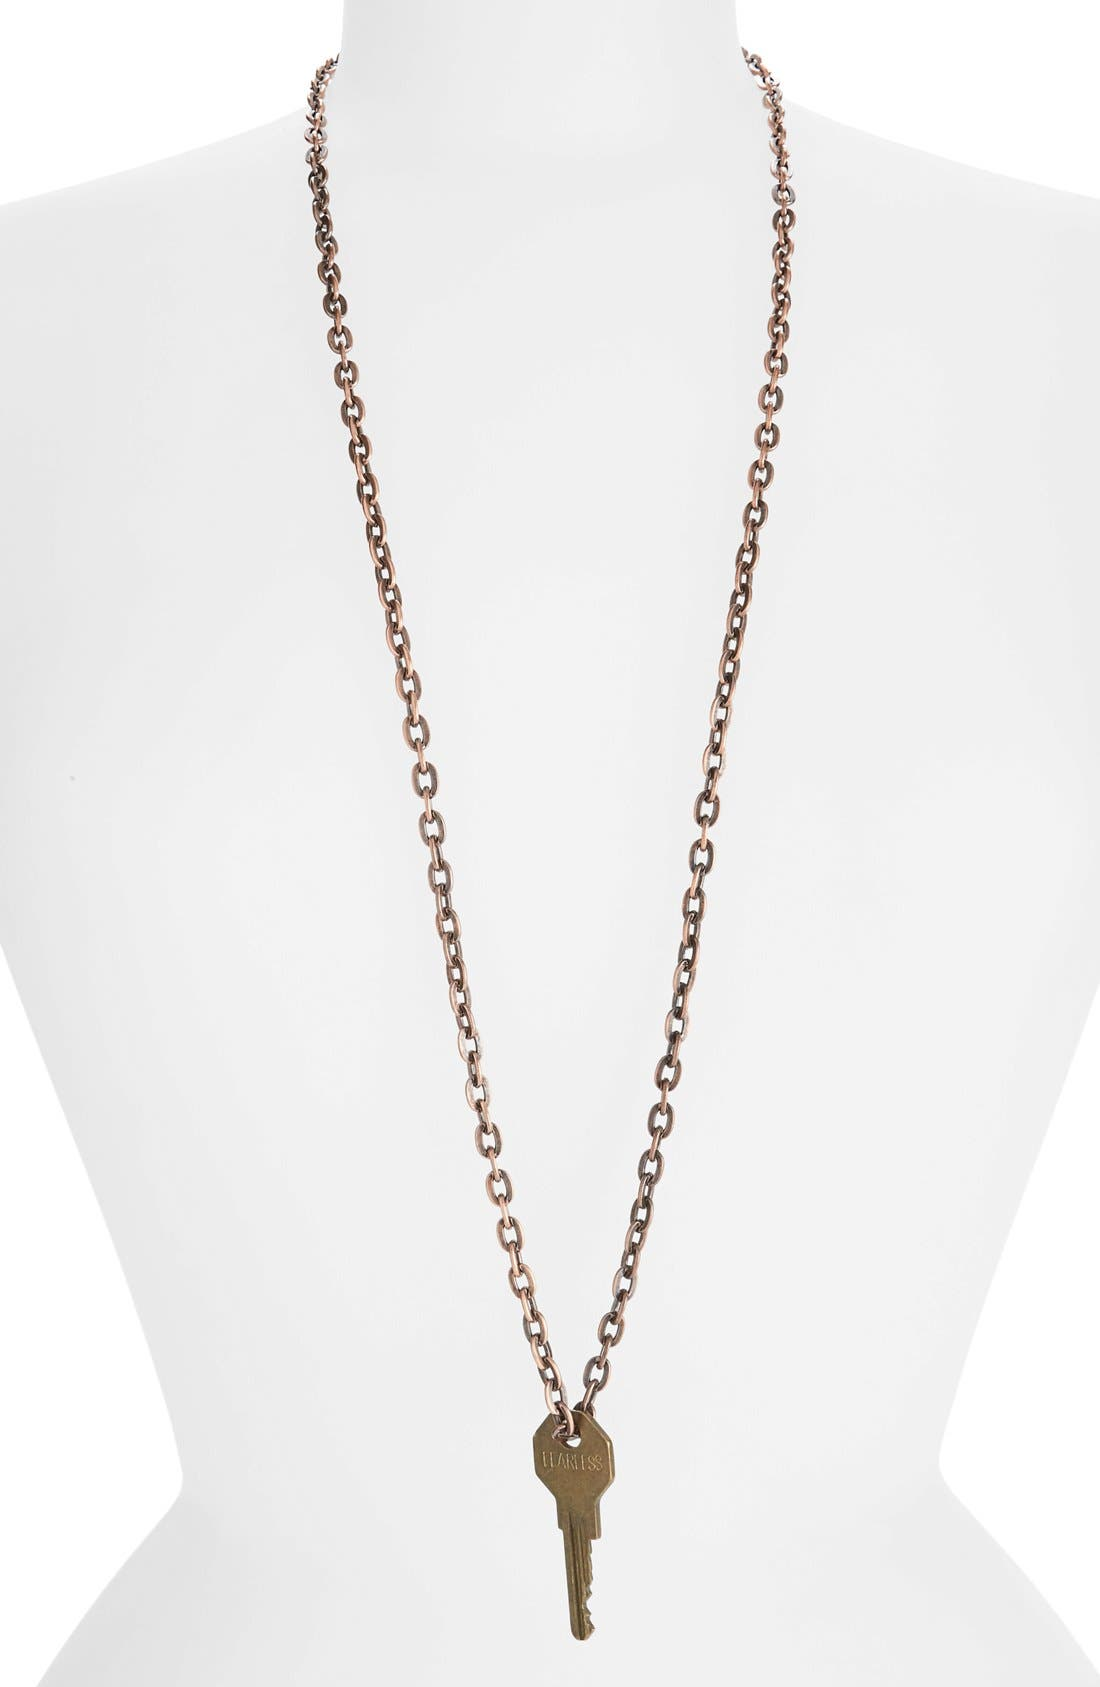 Main Image - The Giving Keys 'Love' Copper Chain Key Pendant Necklace